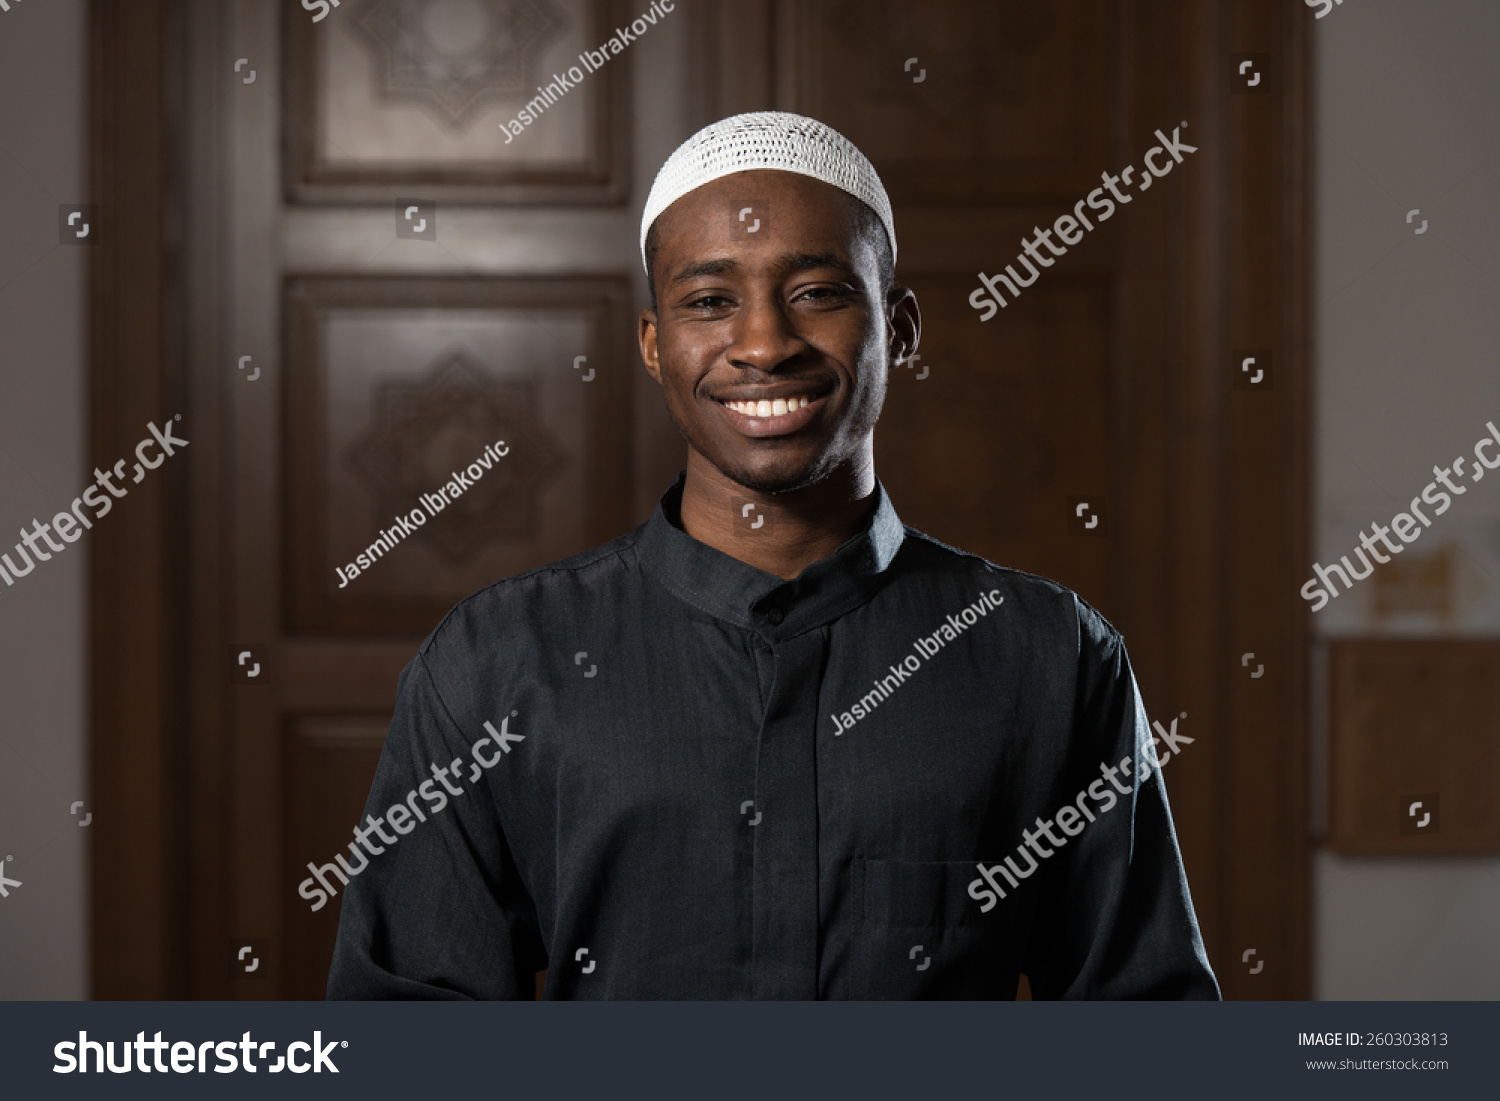 dating an african muslim man I'm an african american woman and i've been dating this arab guy from kuwait i can definitely seeing us having something serious, so i was just wondering how an interracial relationship.